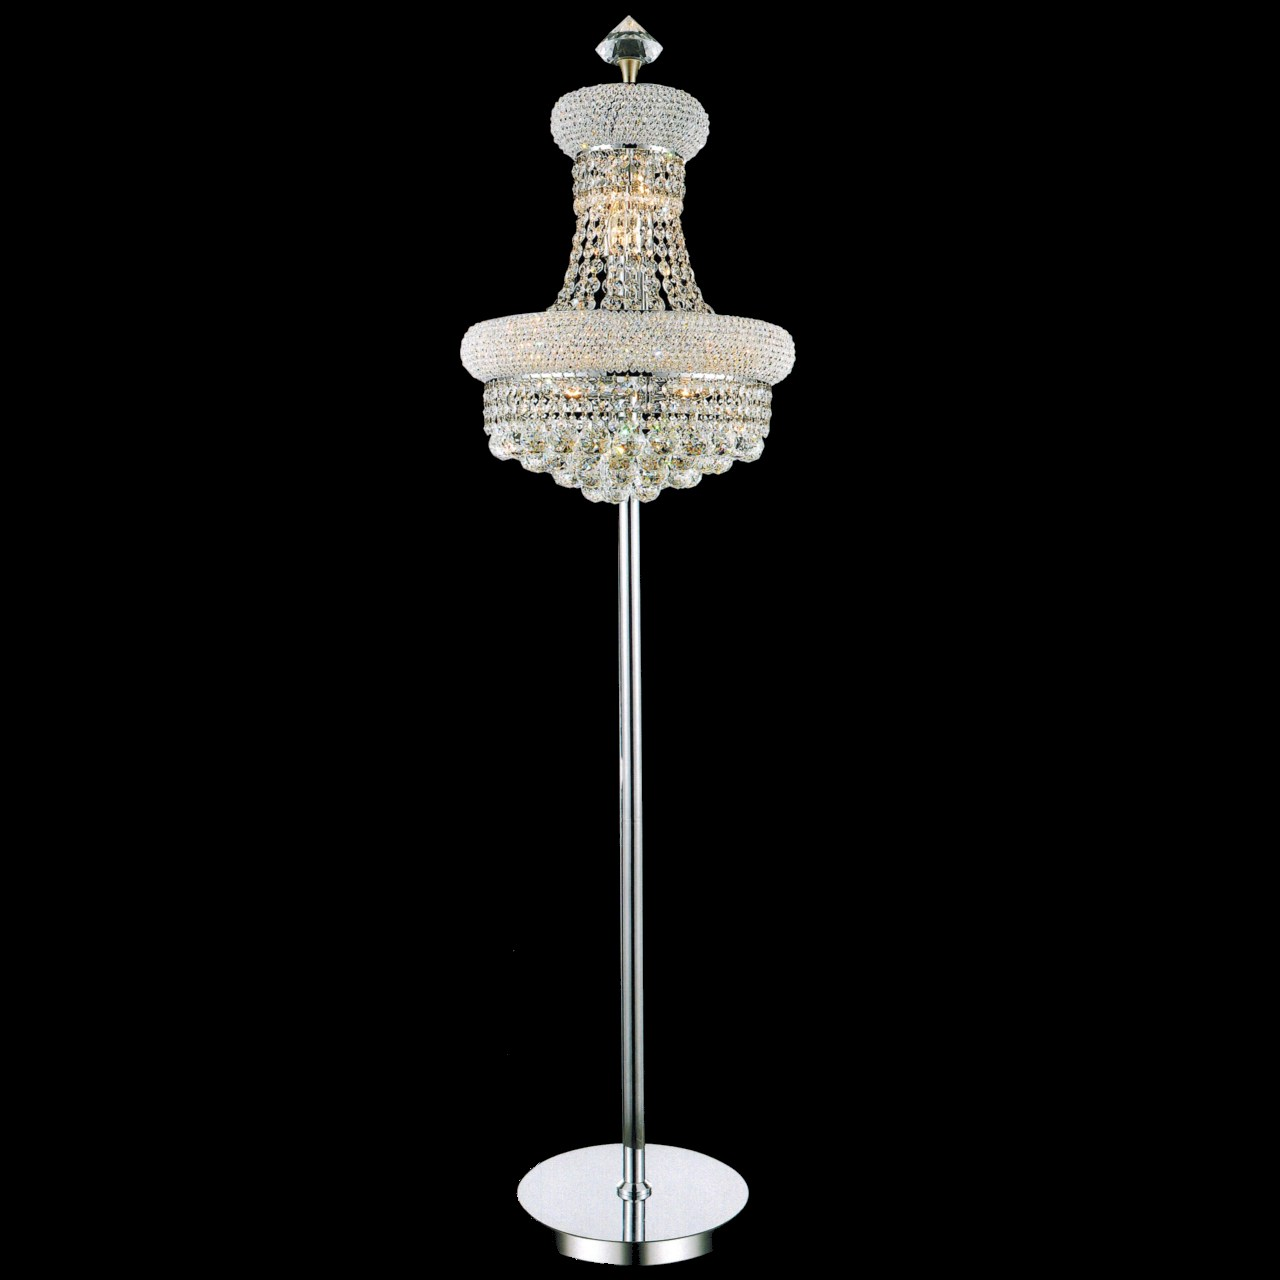 Brizzo Lighting Stores. Empire Crystal Floor Lamp Chrome